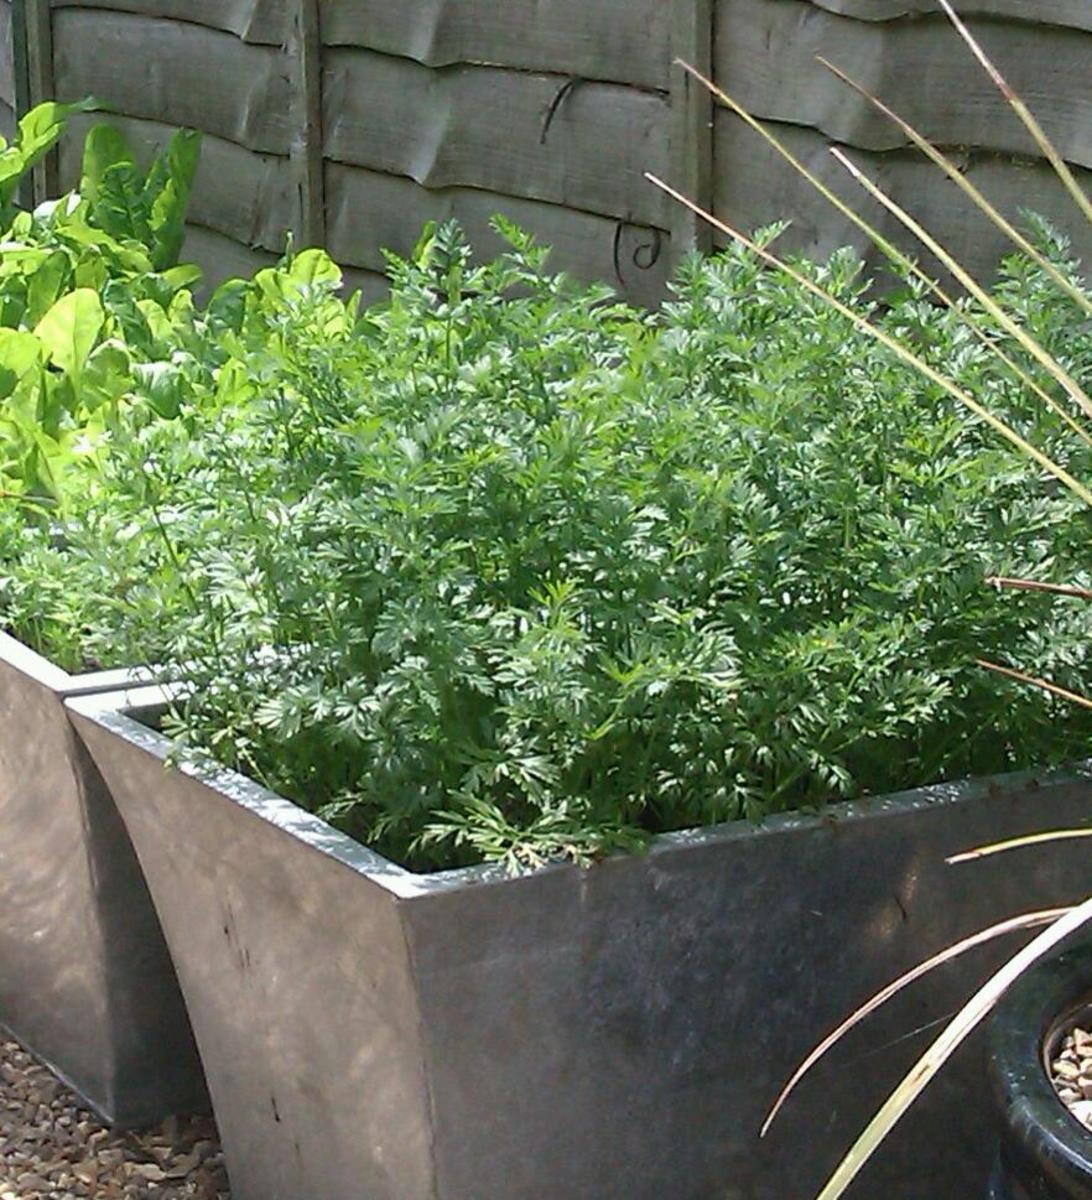 Vegetable Garden Plants Growing Carrots In Pots And Containers